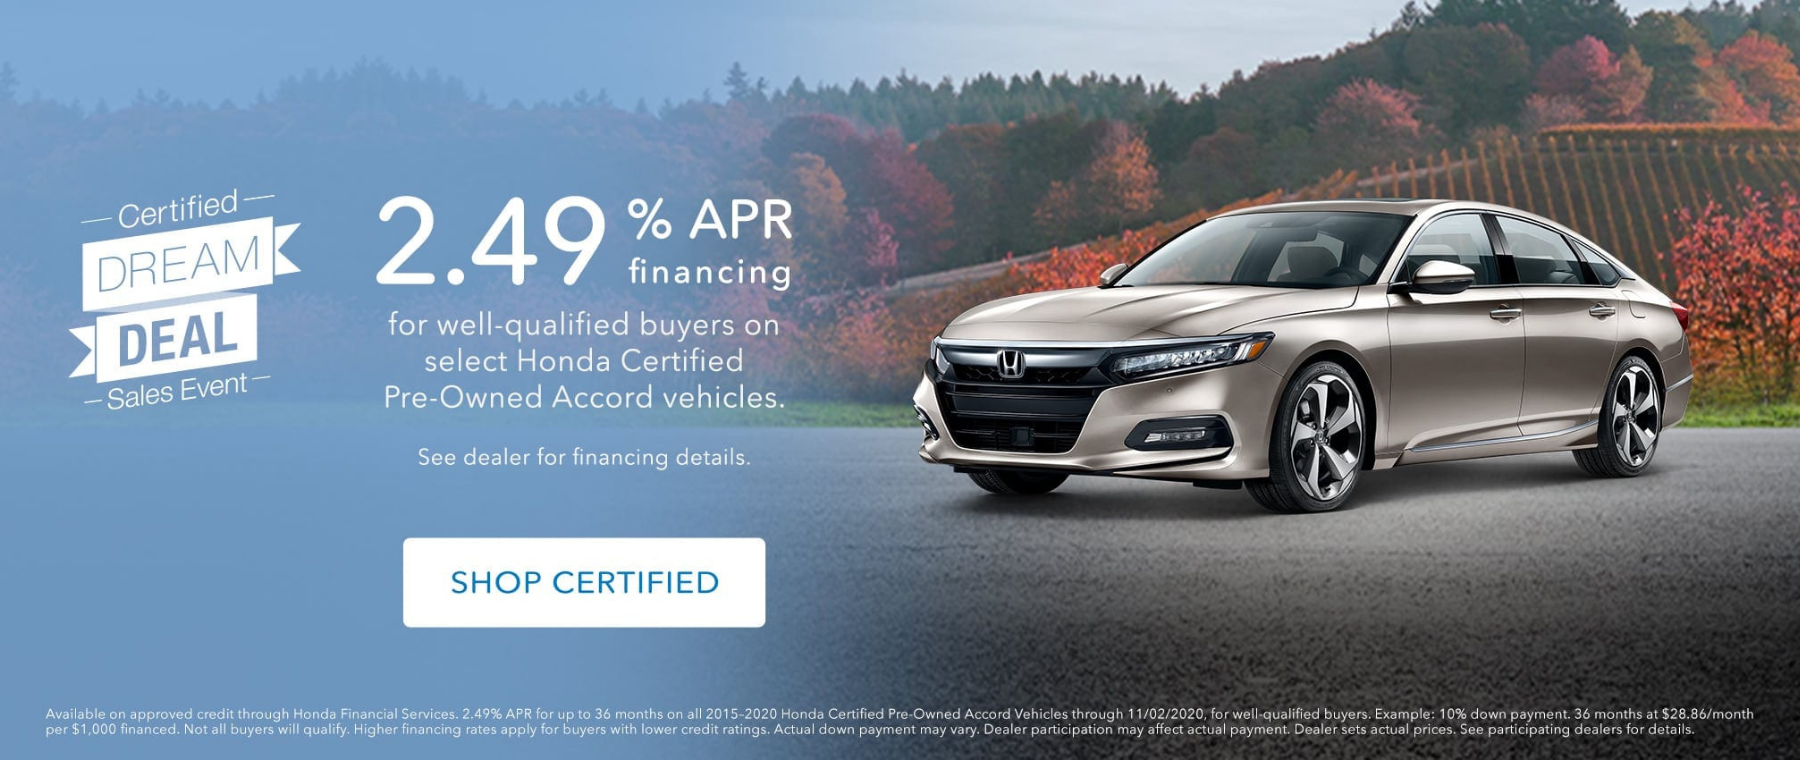 Accord Certified Dream Deal